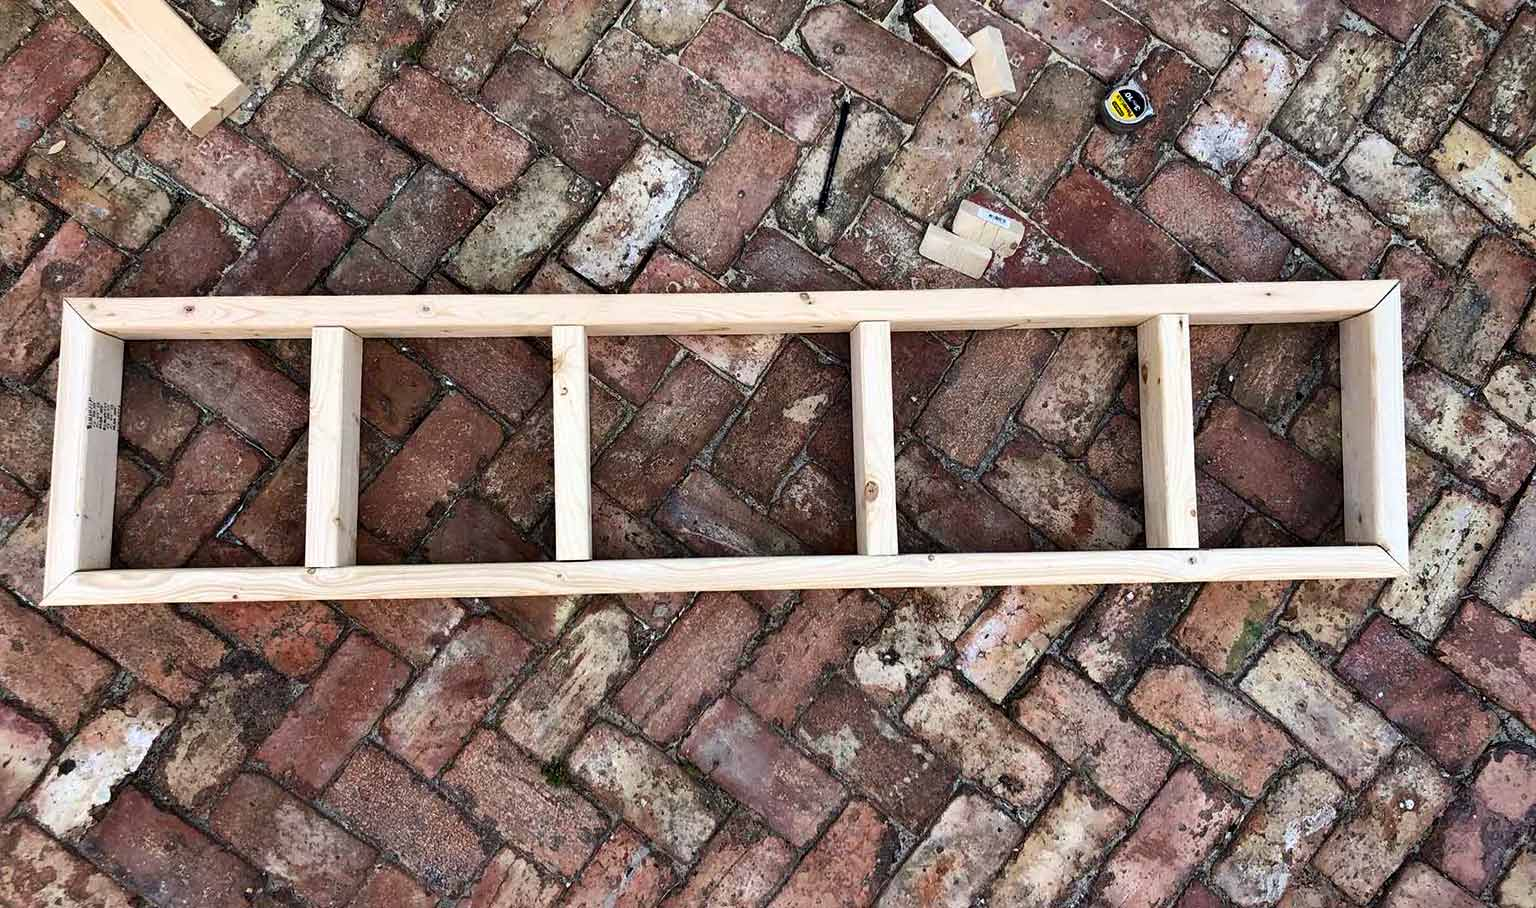 Building a Freestanding Window Bench from IKEA Cabinets: One Room